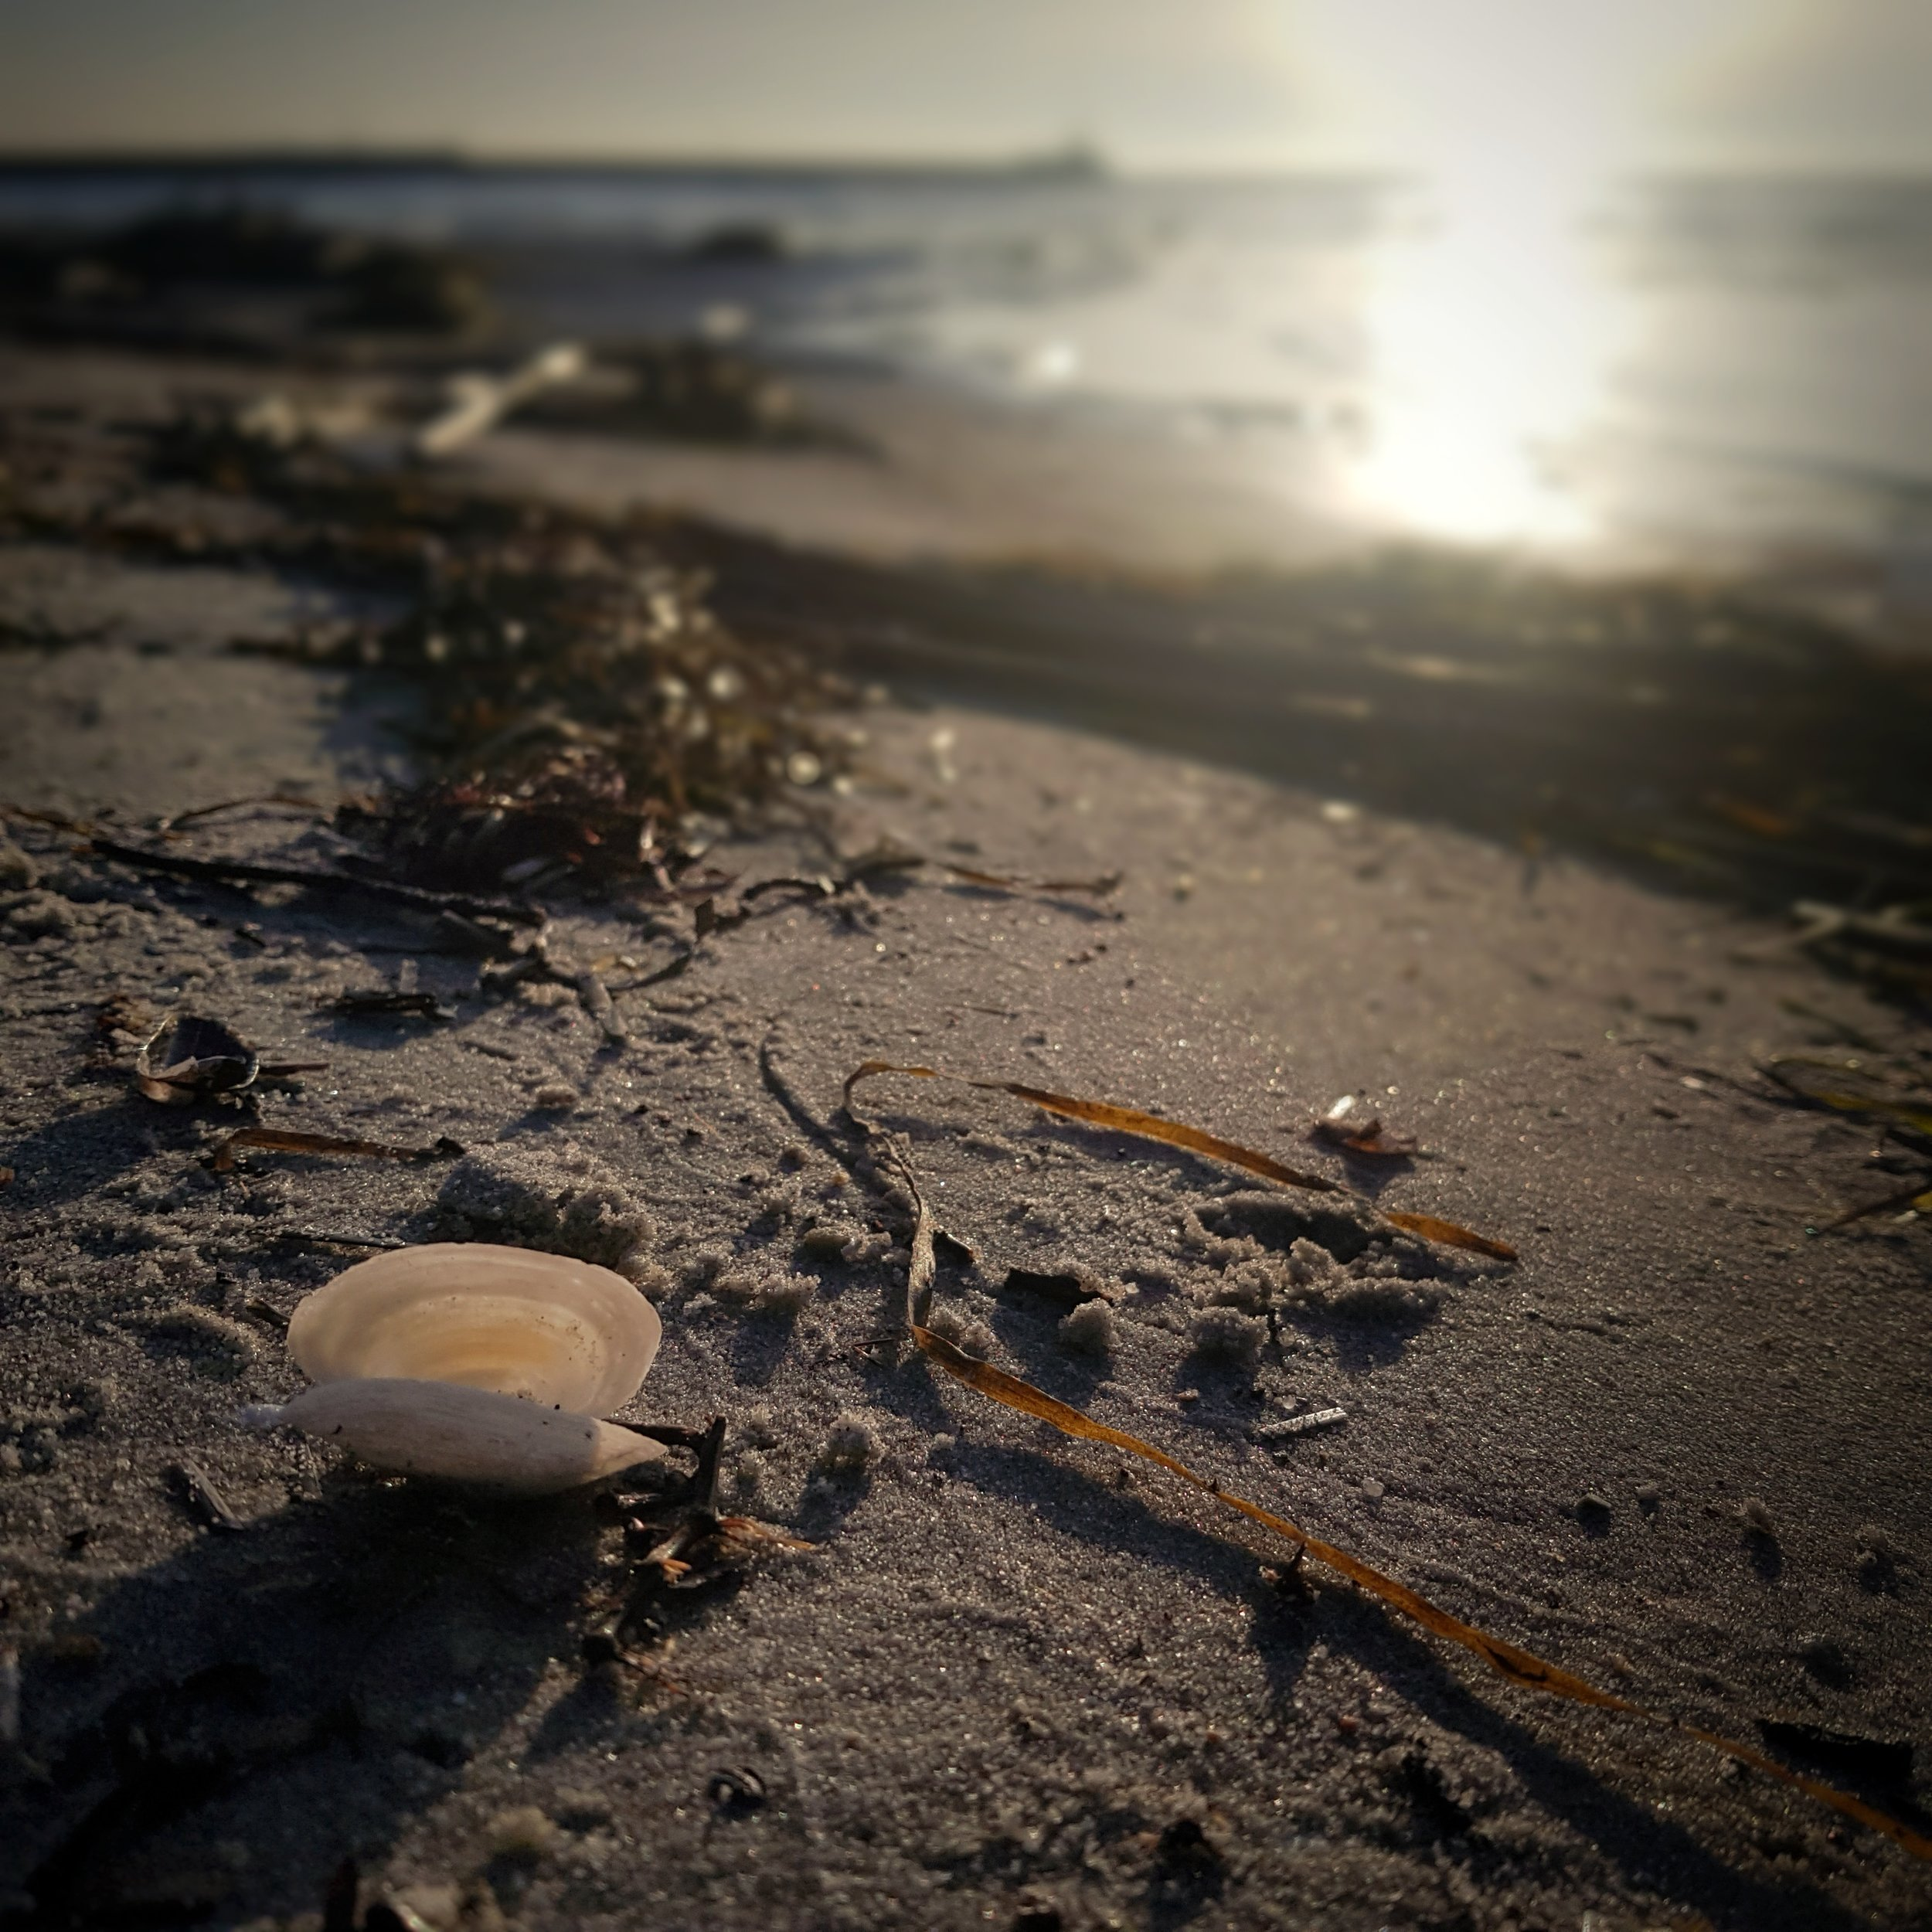 The 365 Project 2019: Day 46 - Seashell by the seashore